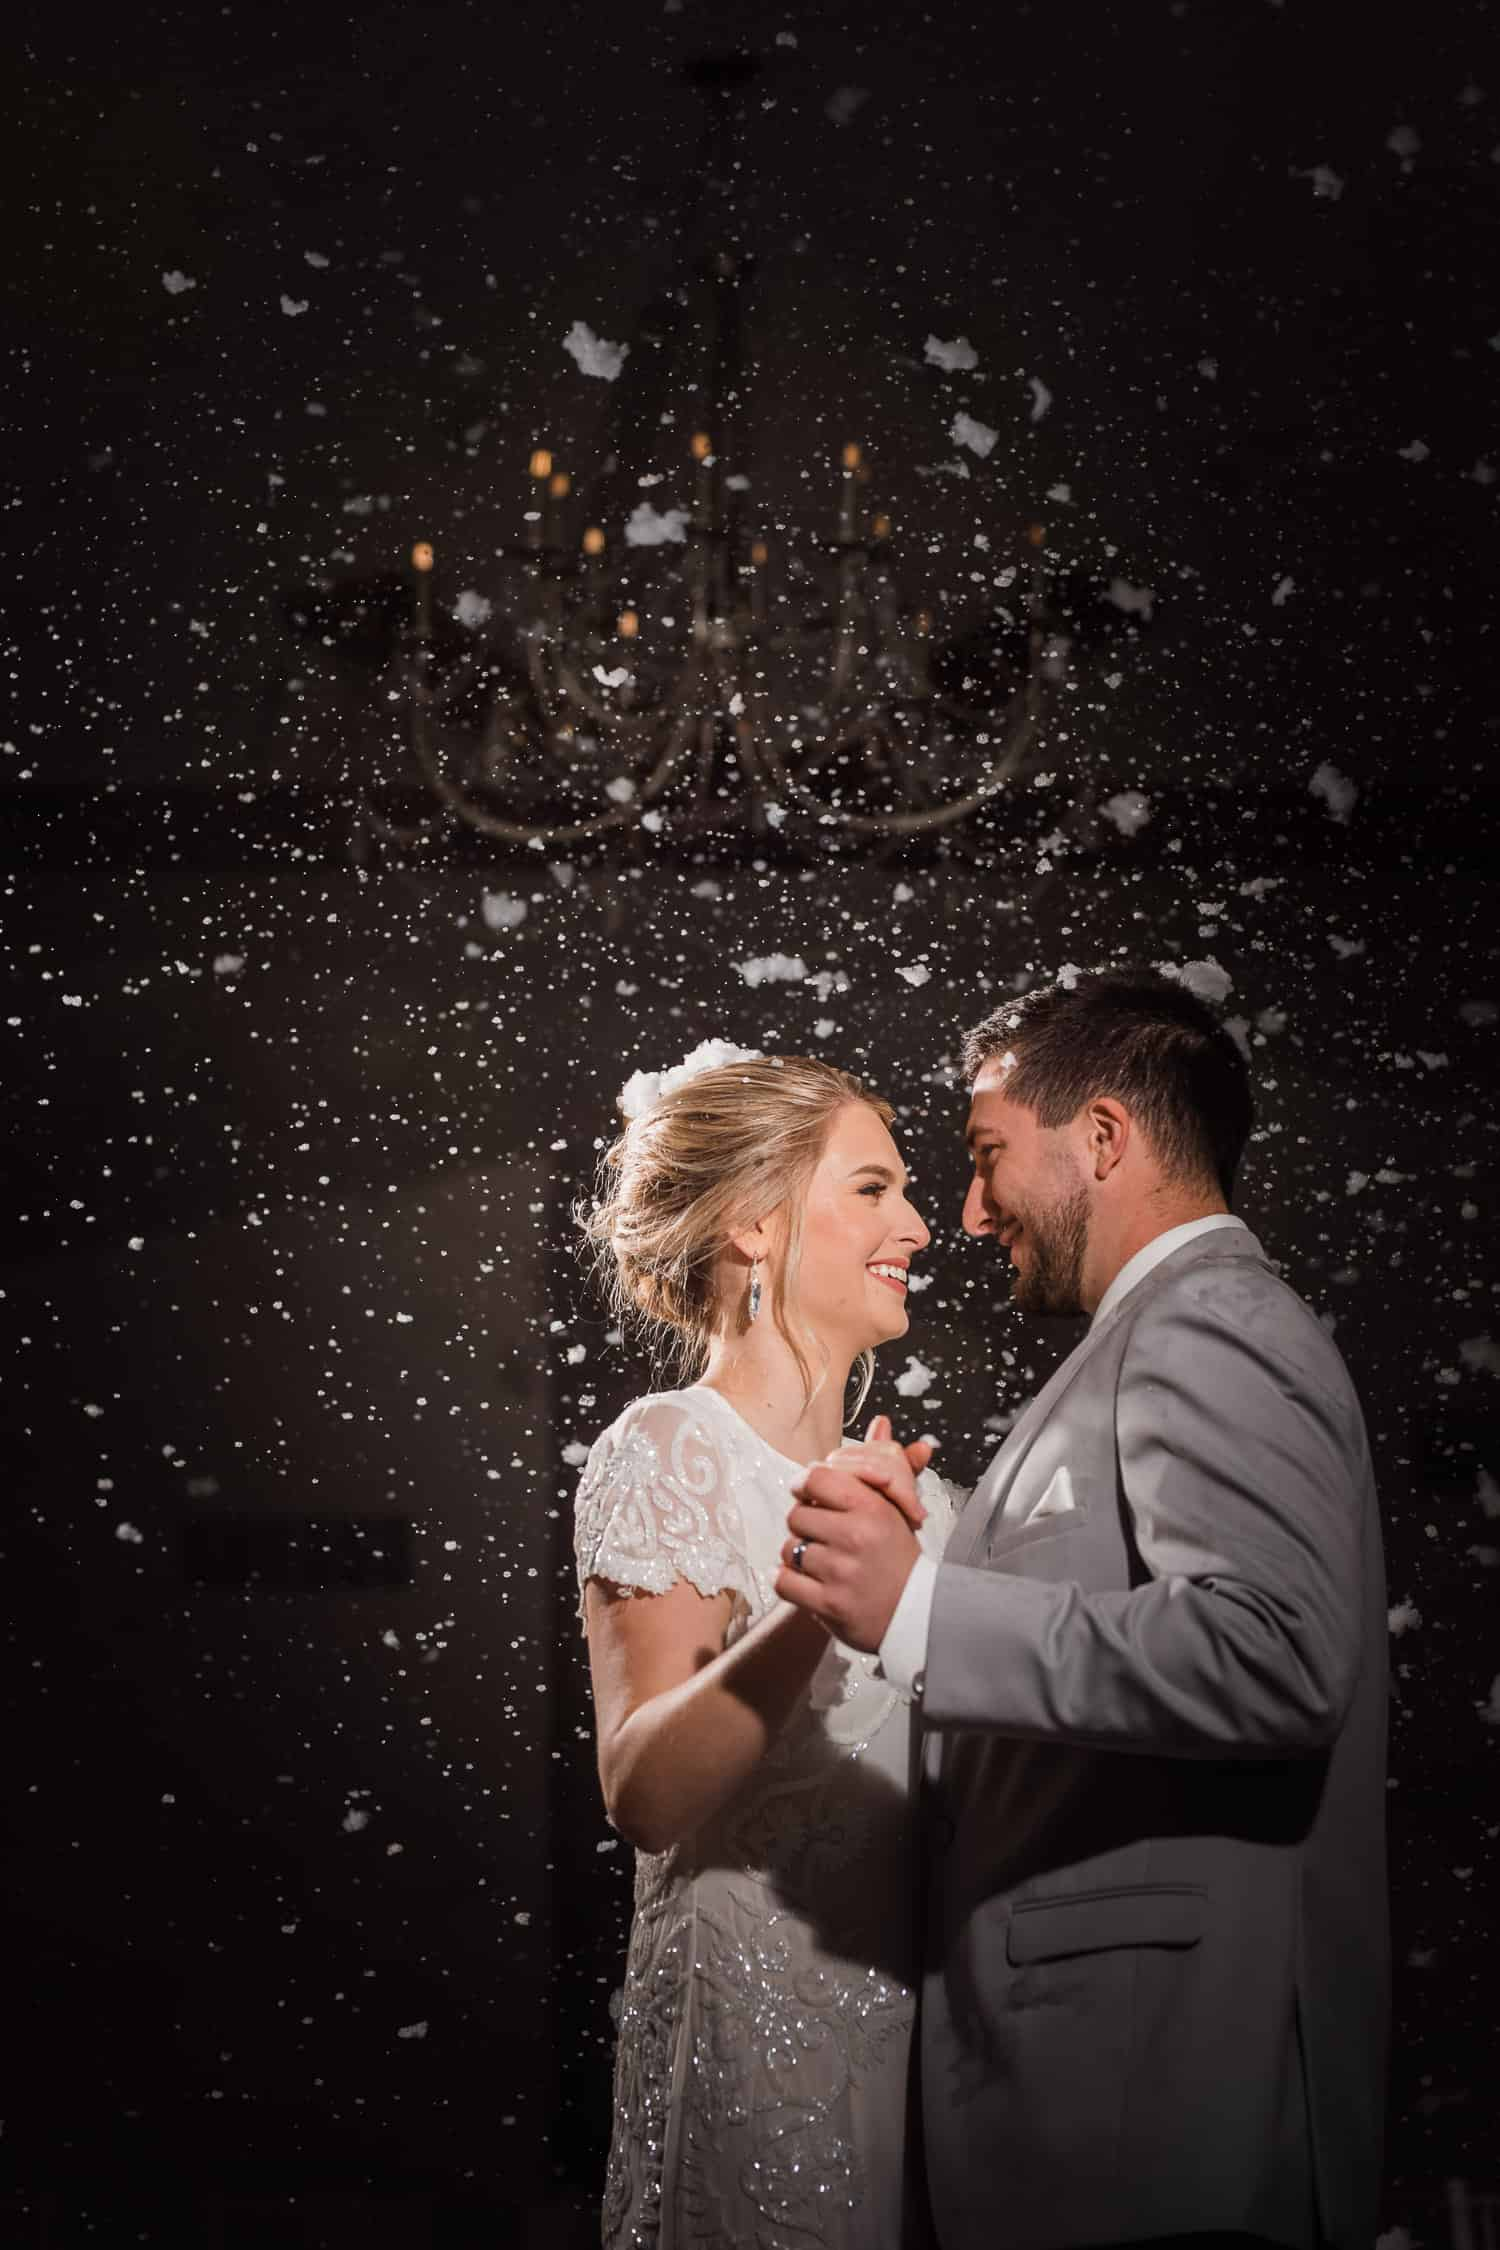 Snow during the first dance at Countryside Chalet